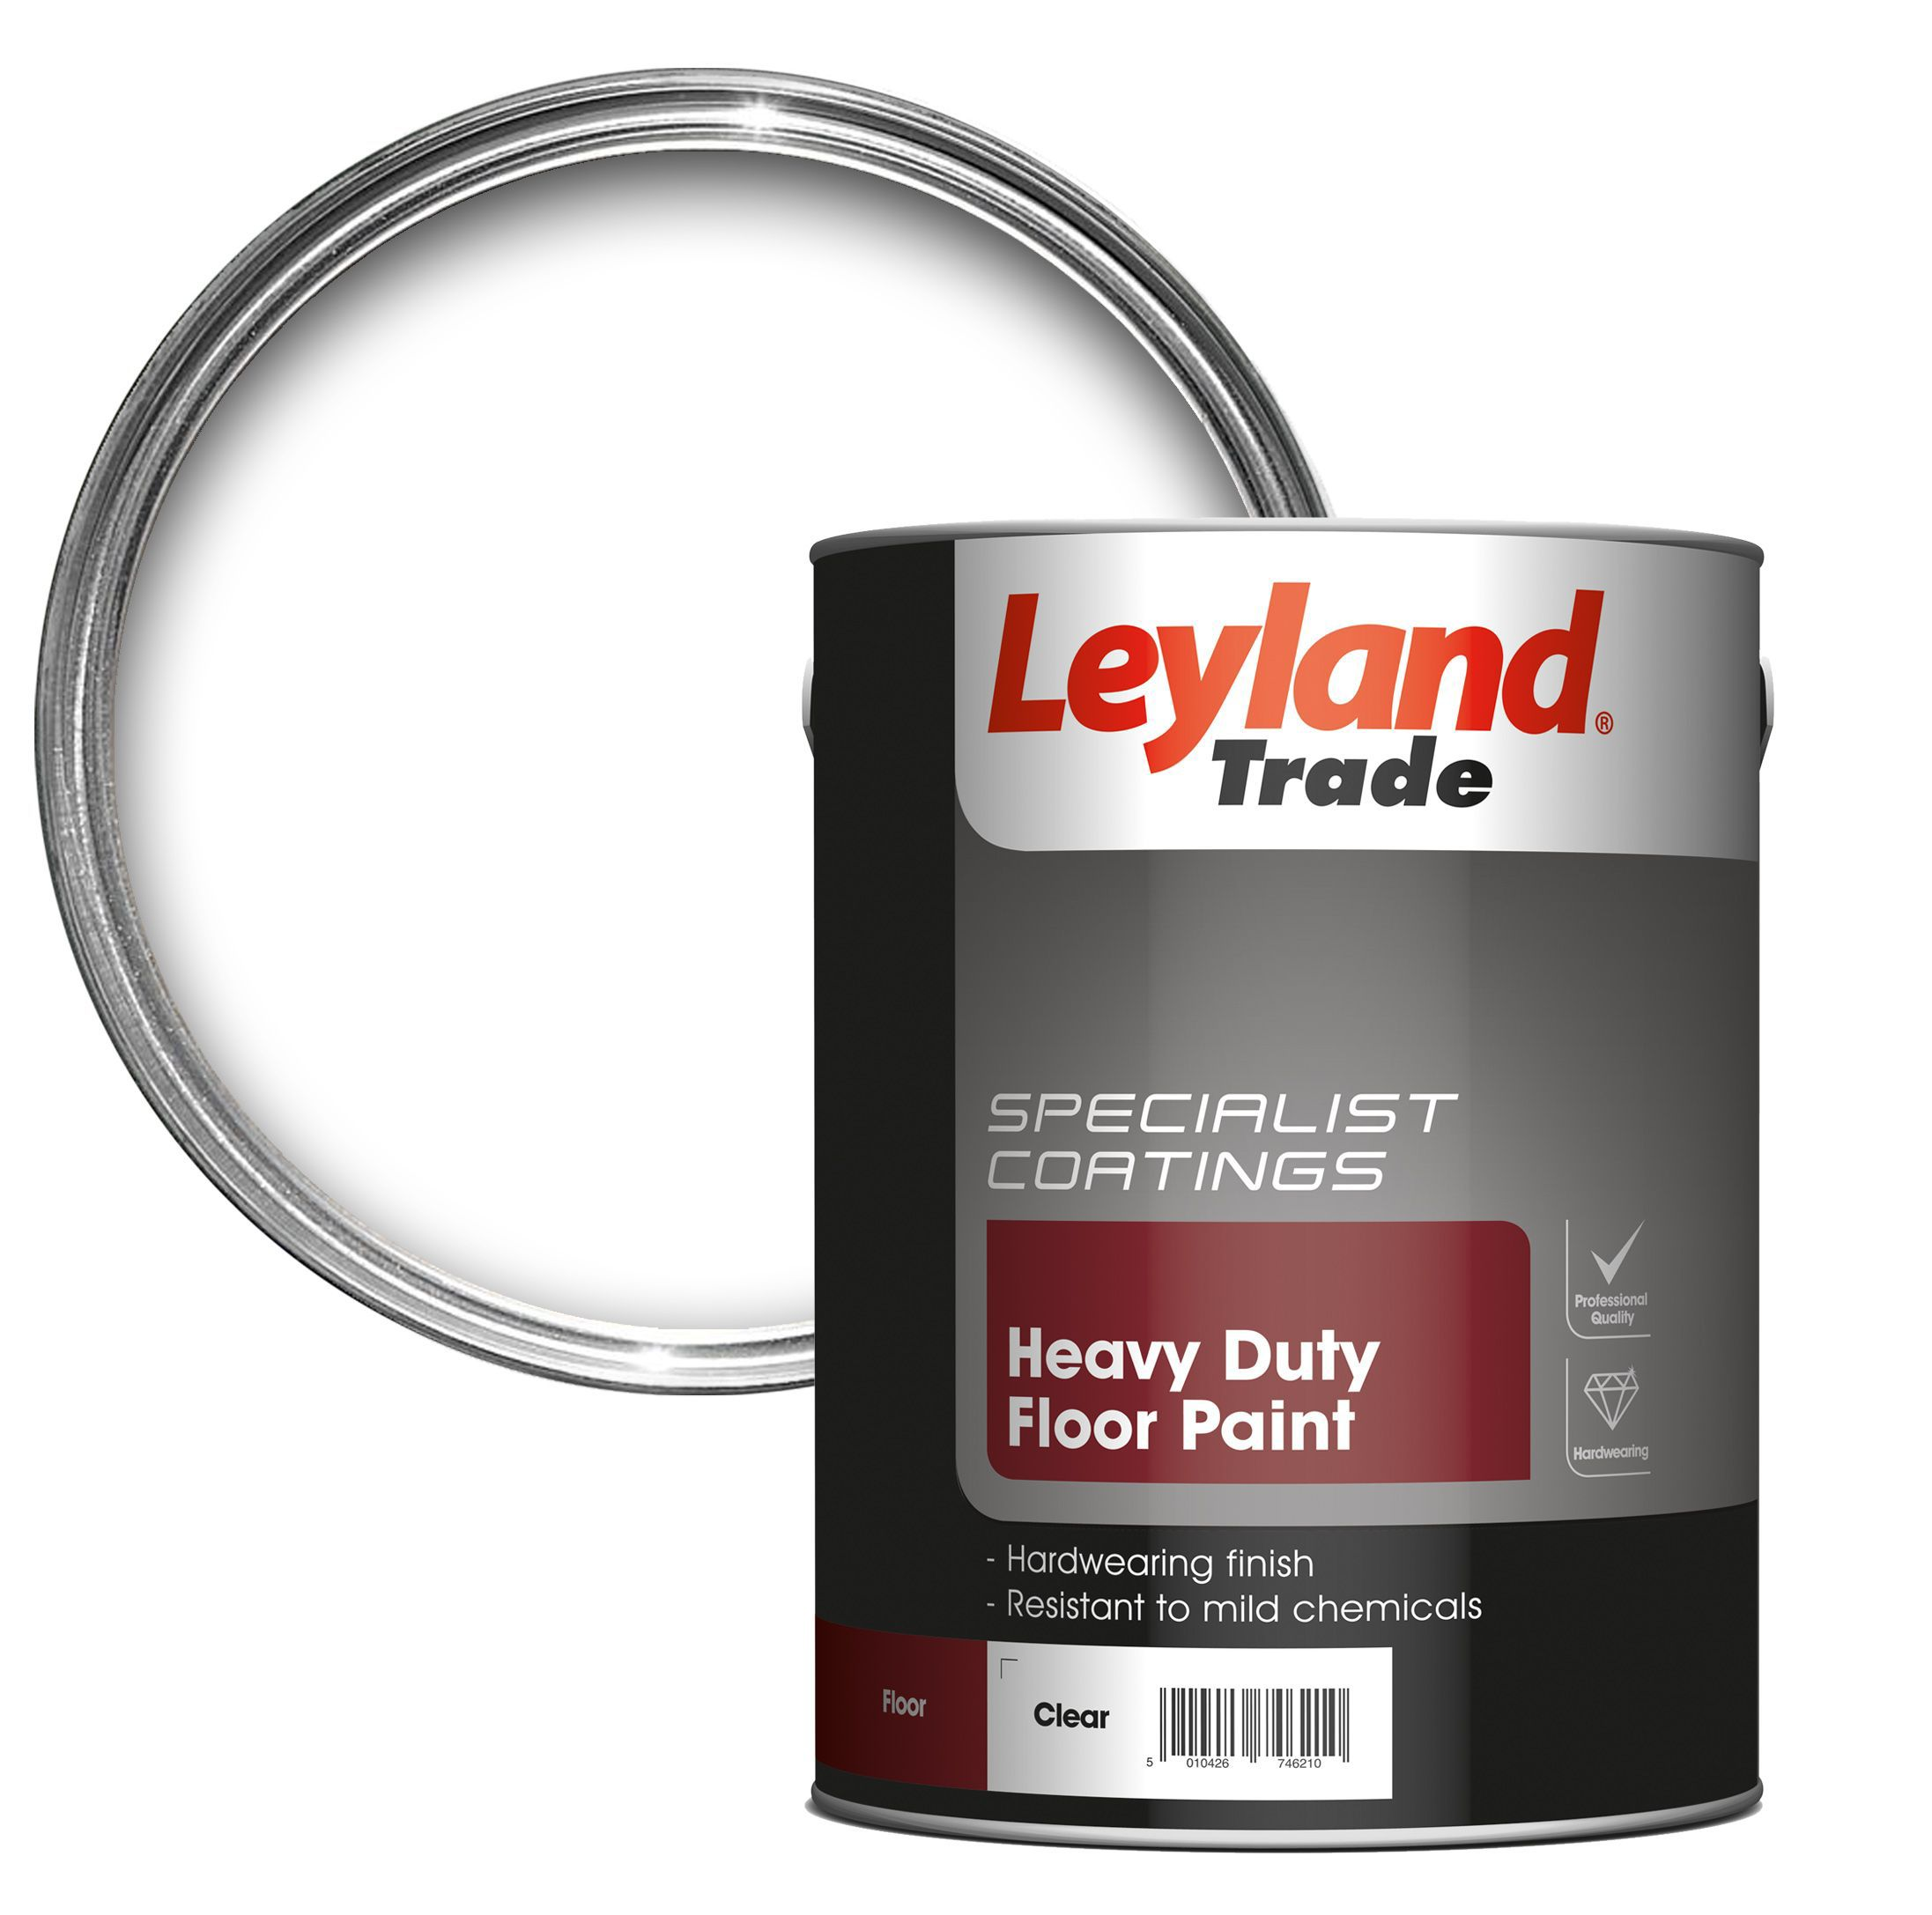 Leyland trade heavy duty clear satin floor tile paint5l leyland trade heavy duty clear satin floor tile paint5l departments diy at bq dailygadgetfo Image collections